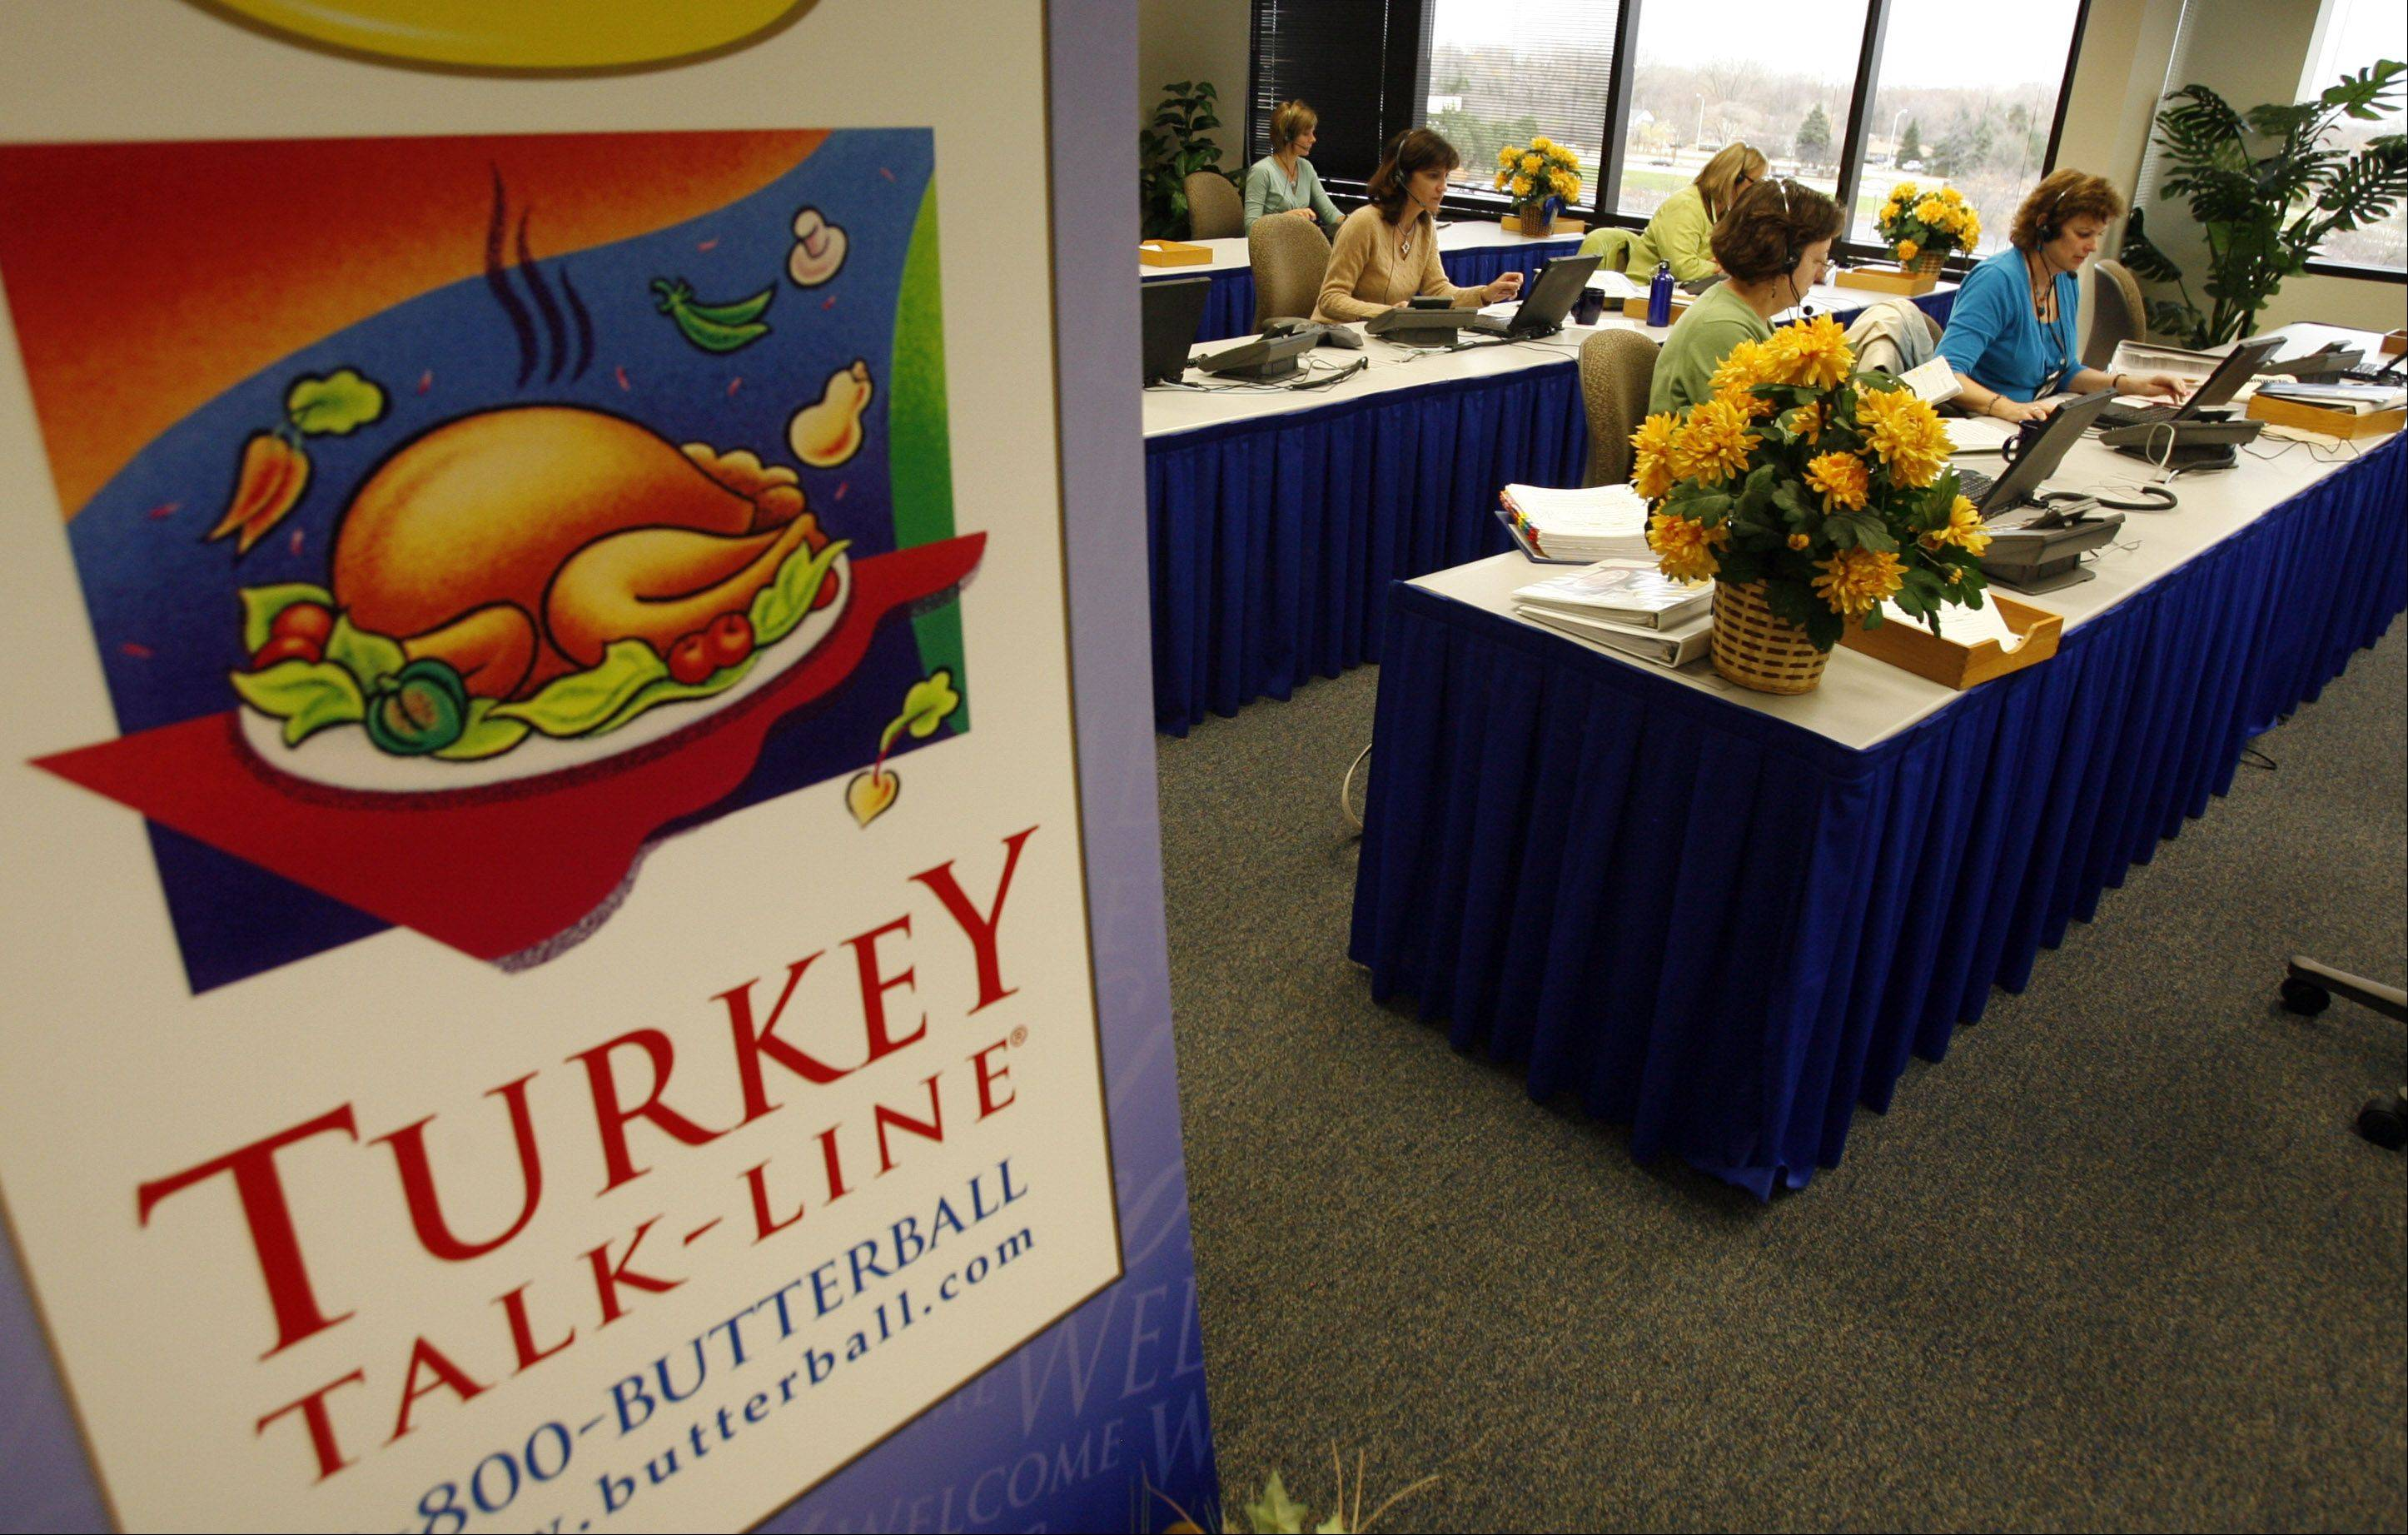 GEORGE LECLAIRE/DAILY HERALD Butterball announced last week it will have only a limited supply of large, fresh turkeys that are 16 pounds or heavier for the holidays.